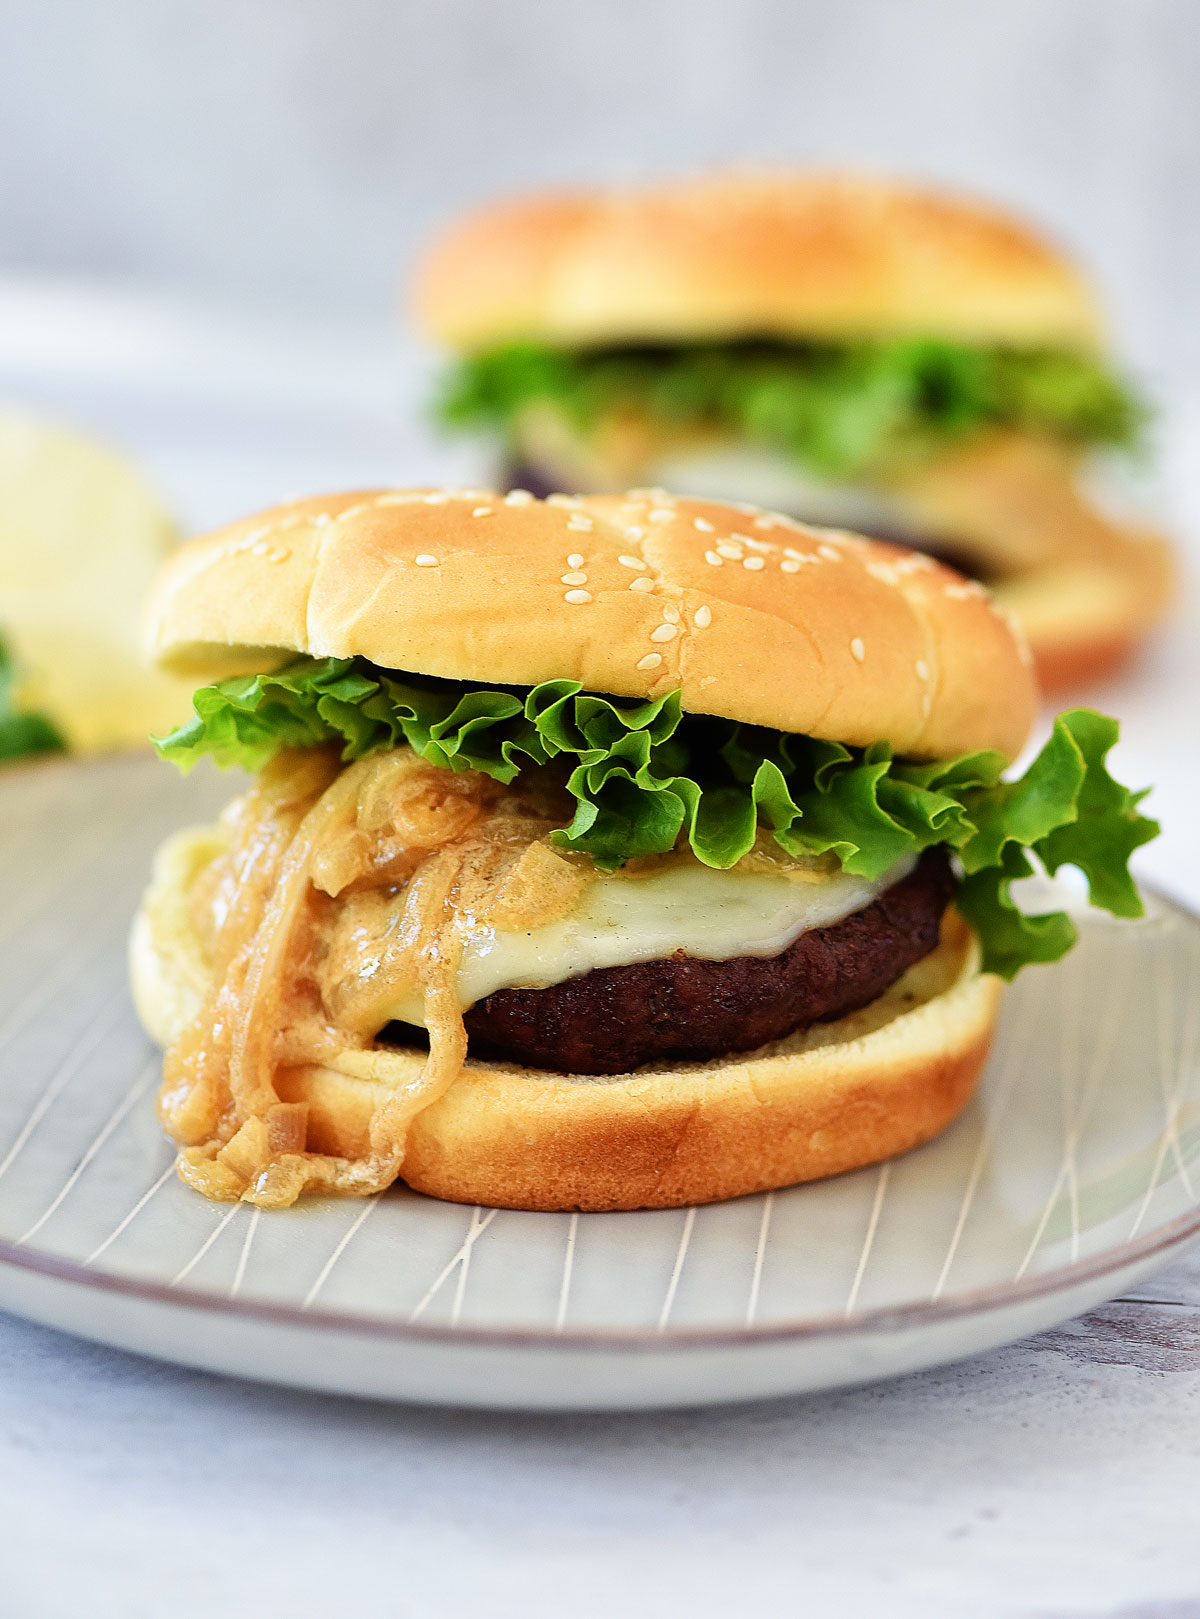 French Onion Burgers are loaded with provolone cheese and sautéed onions. Life-in-the-Lofthouse.com